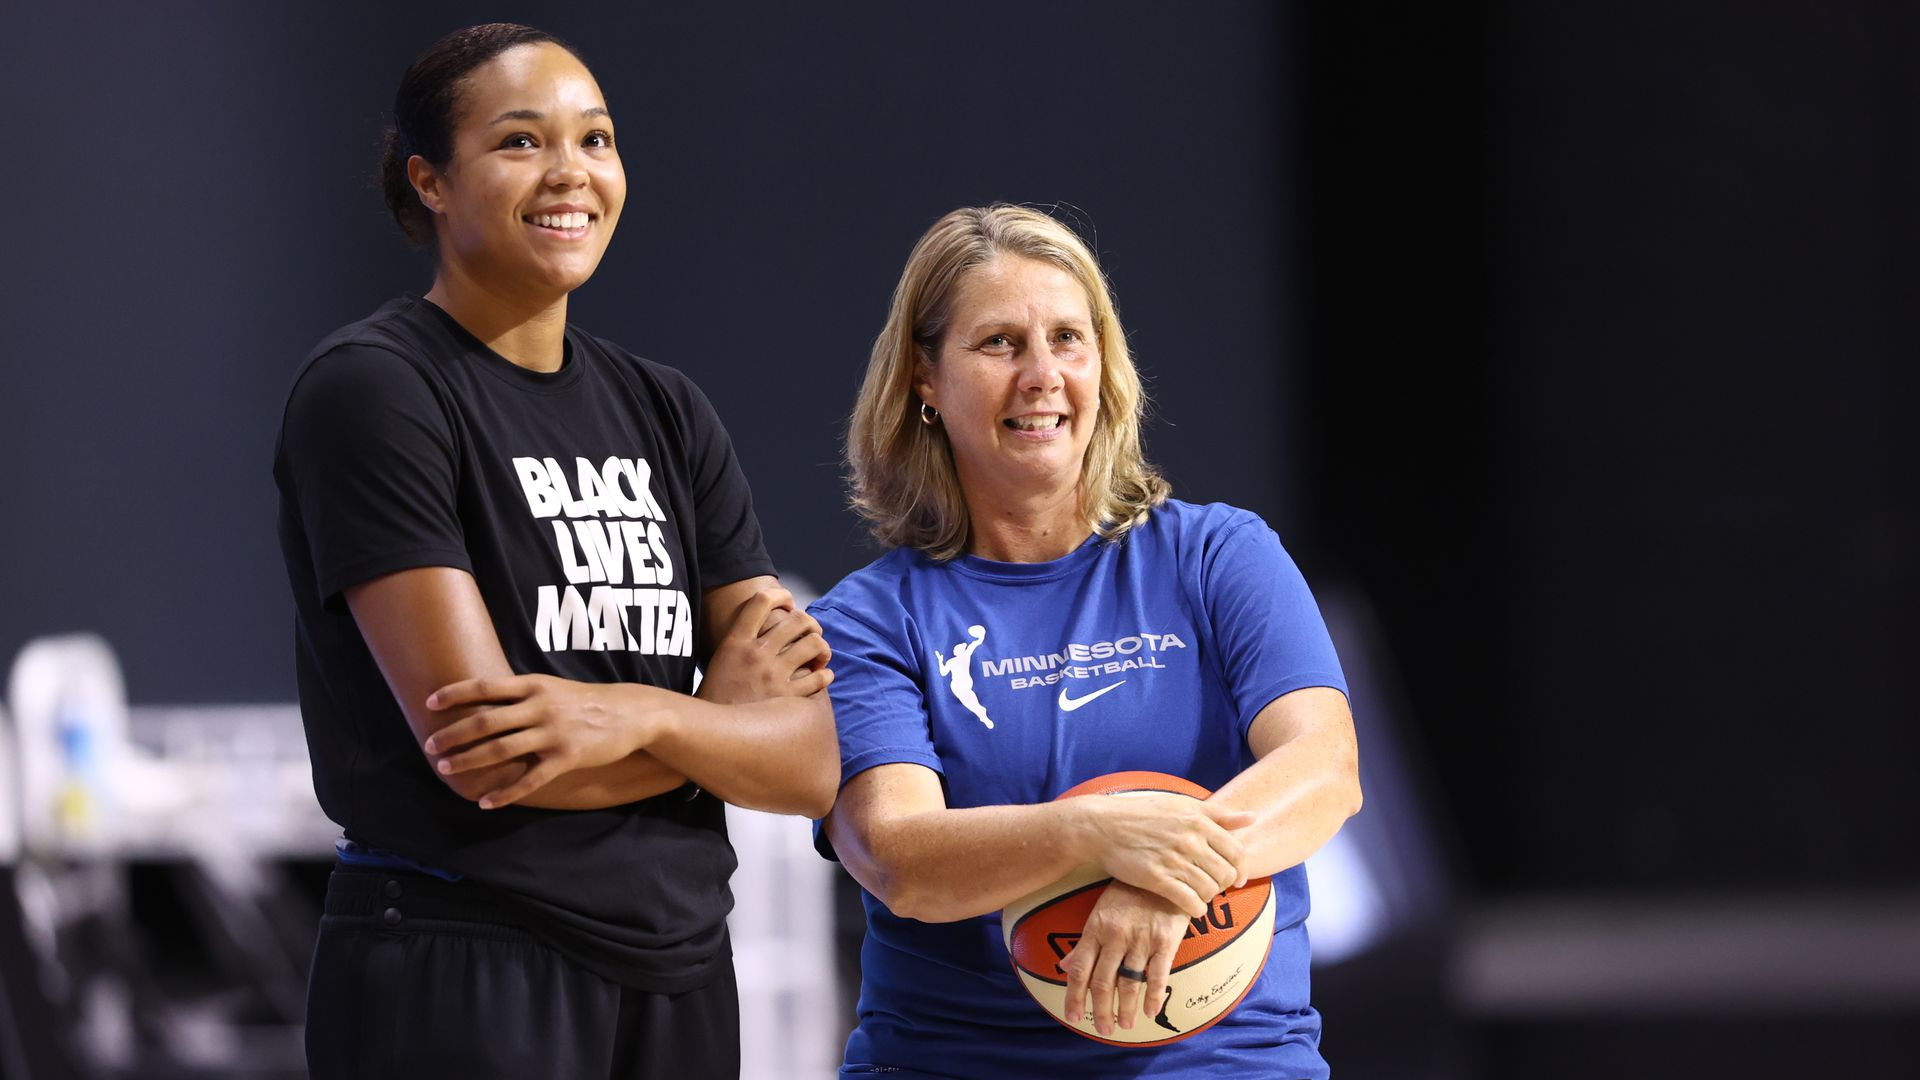 Cheryl Reeve wears a blue shirt and holds a basketball next to Napheesa Collier